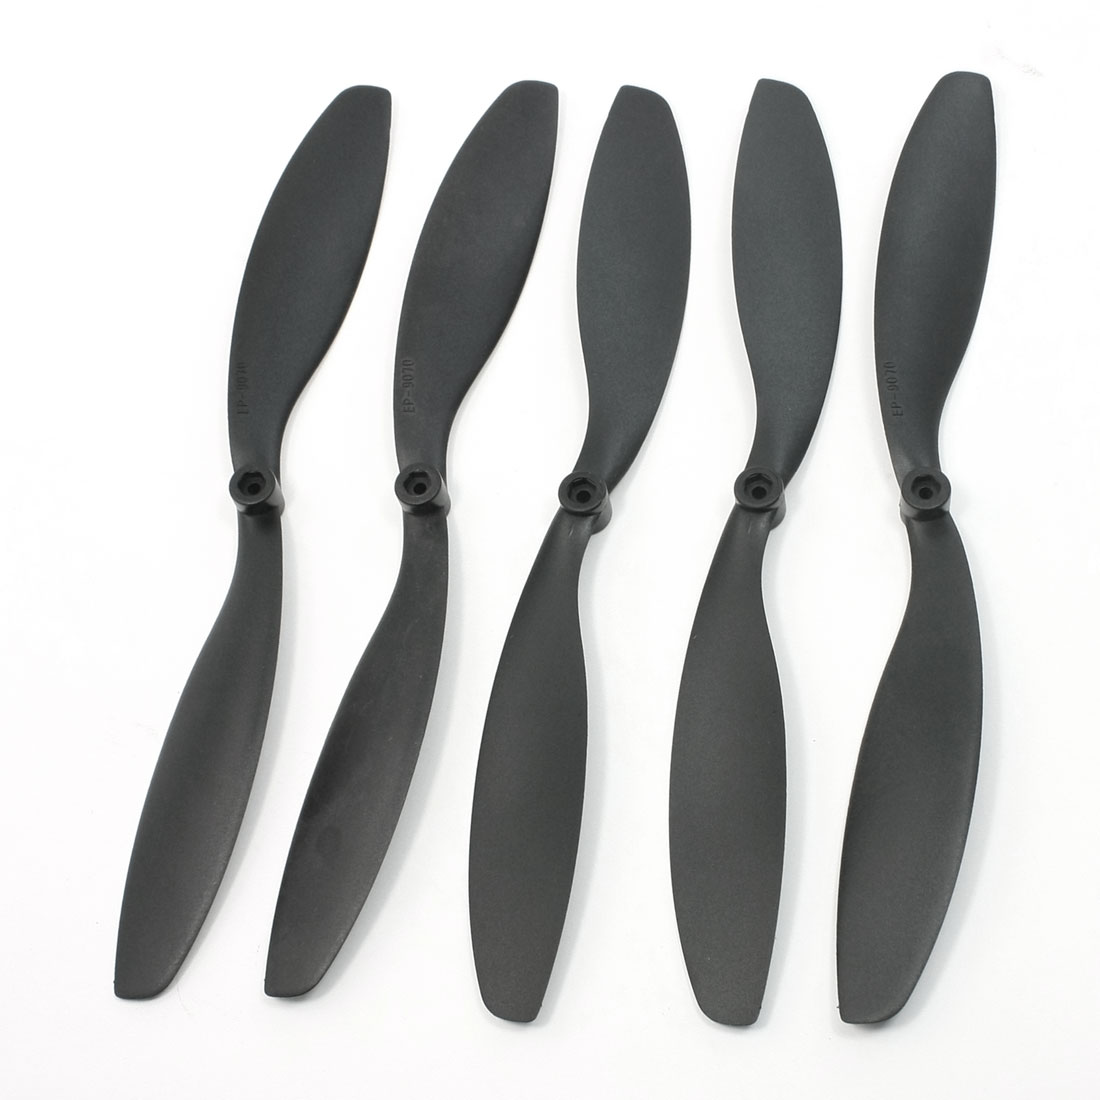 "RC Model Plane 9"" Length 7"" Pitch 9x7 EP9070 Props Propellers Black 5 Pcs"